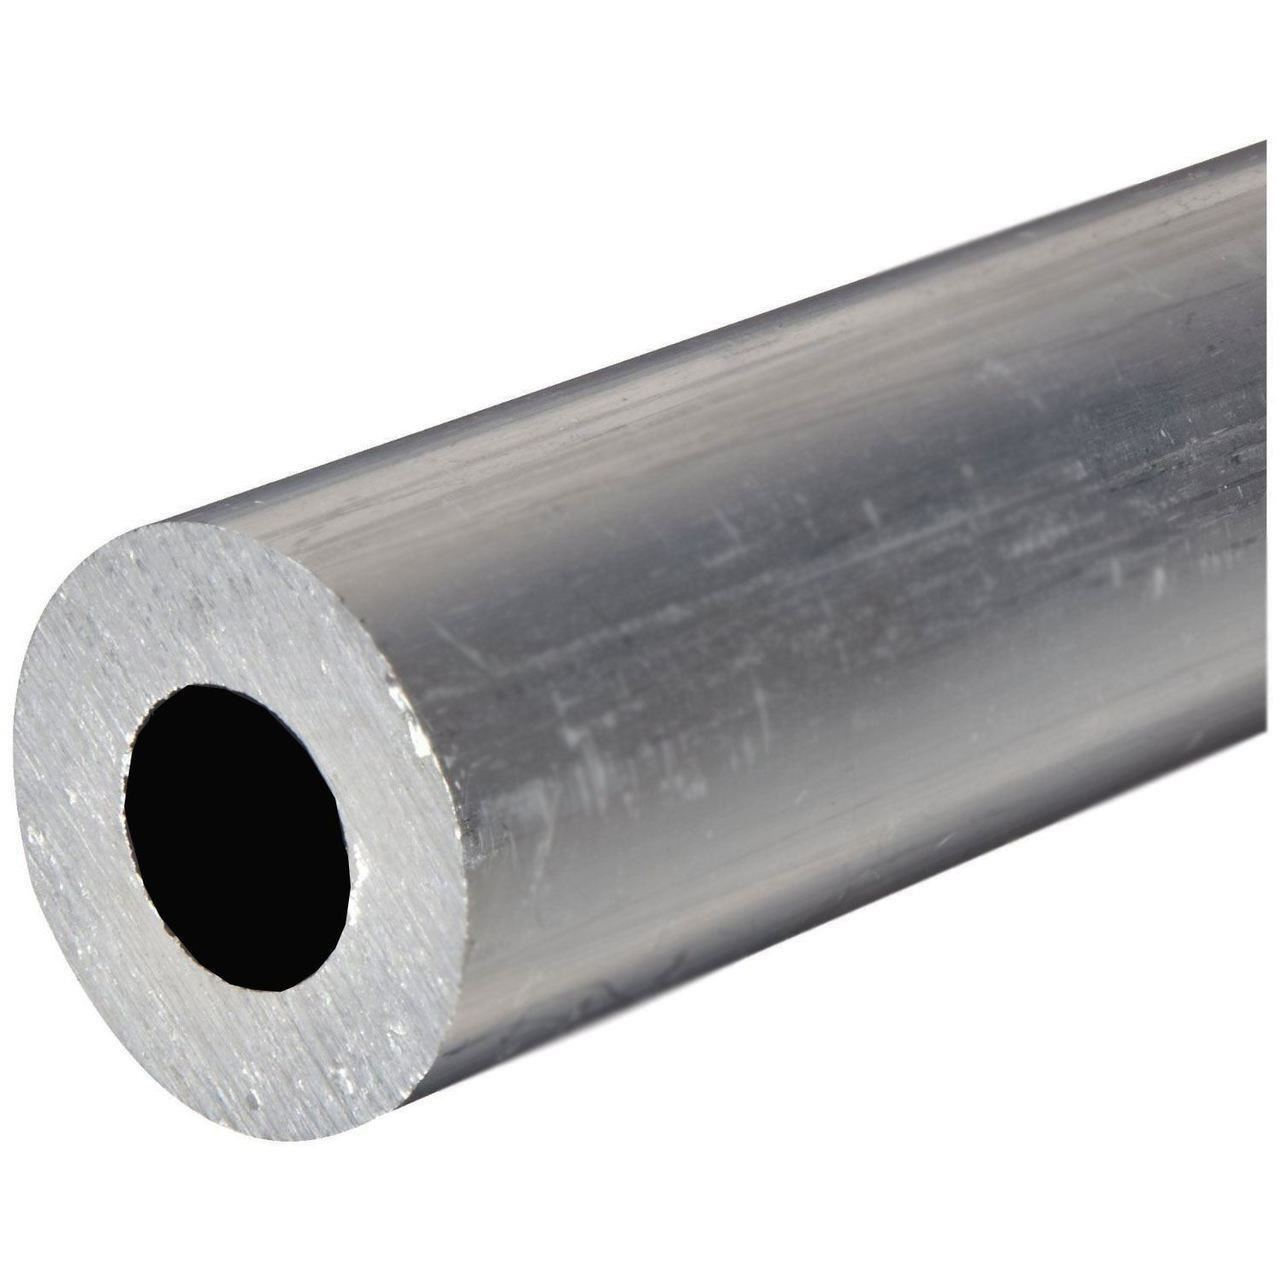 T aluminum round tube hollow bar quot od id